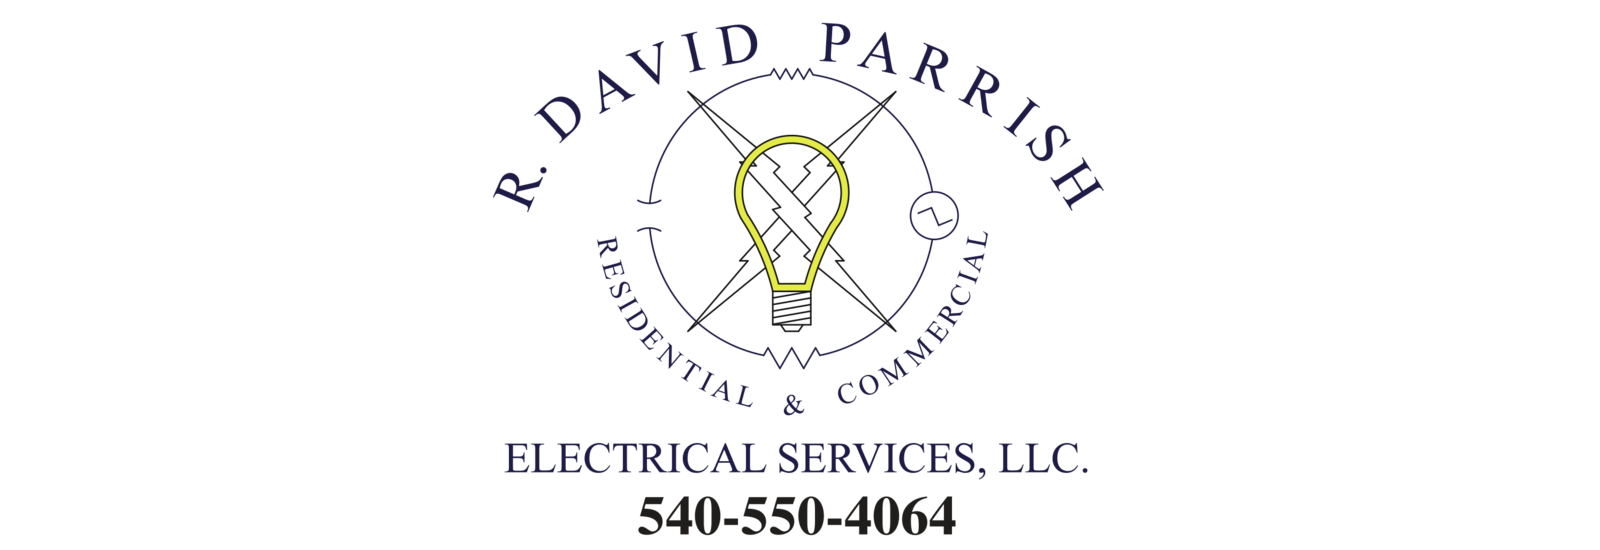 R David Parrish Electrical Services LLC